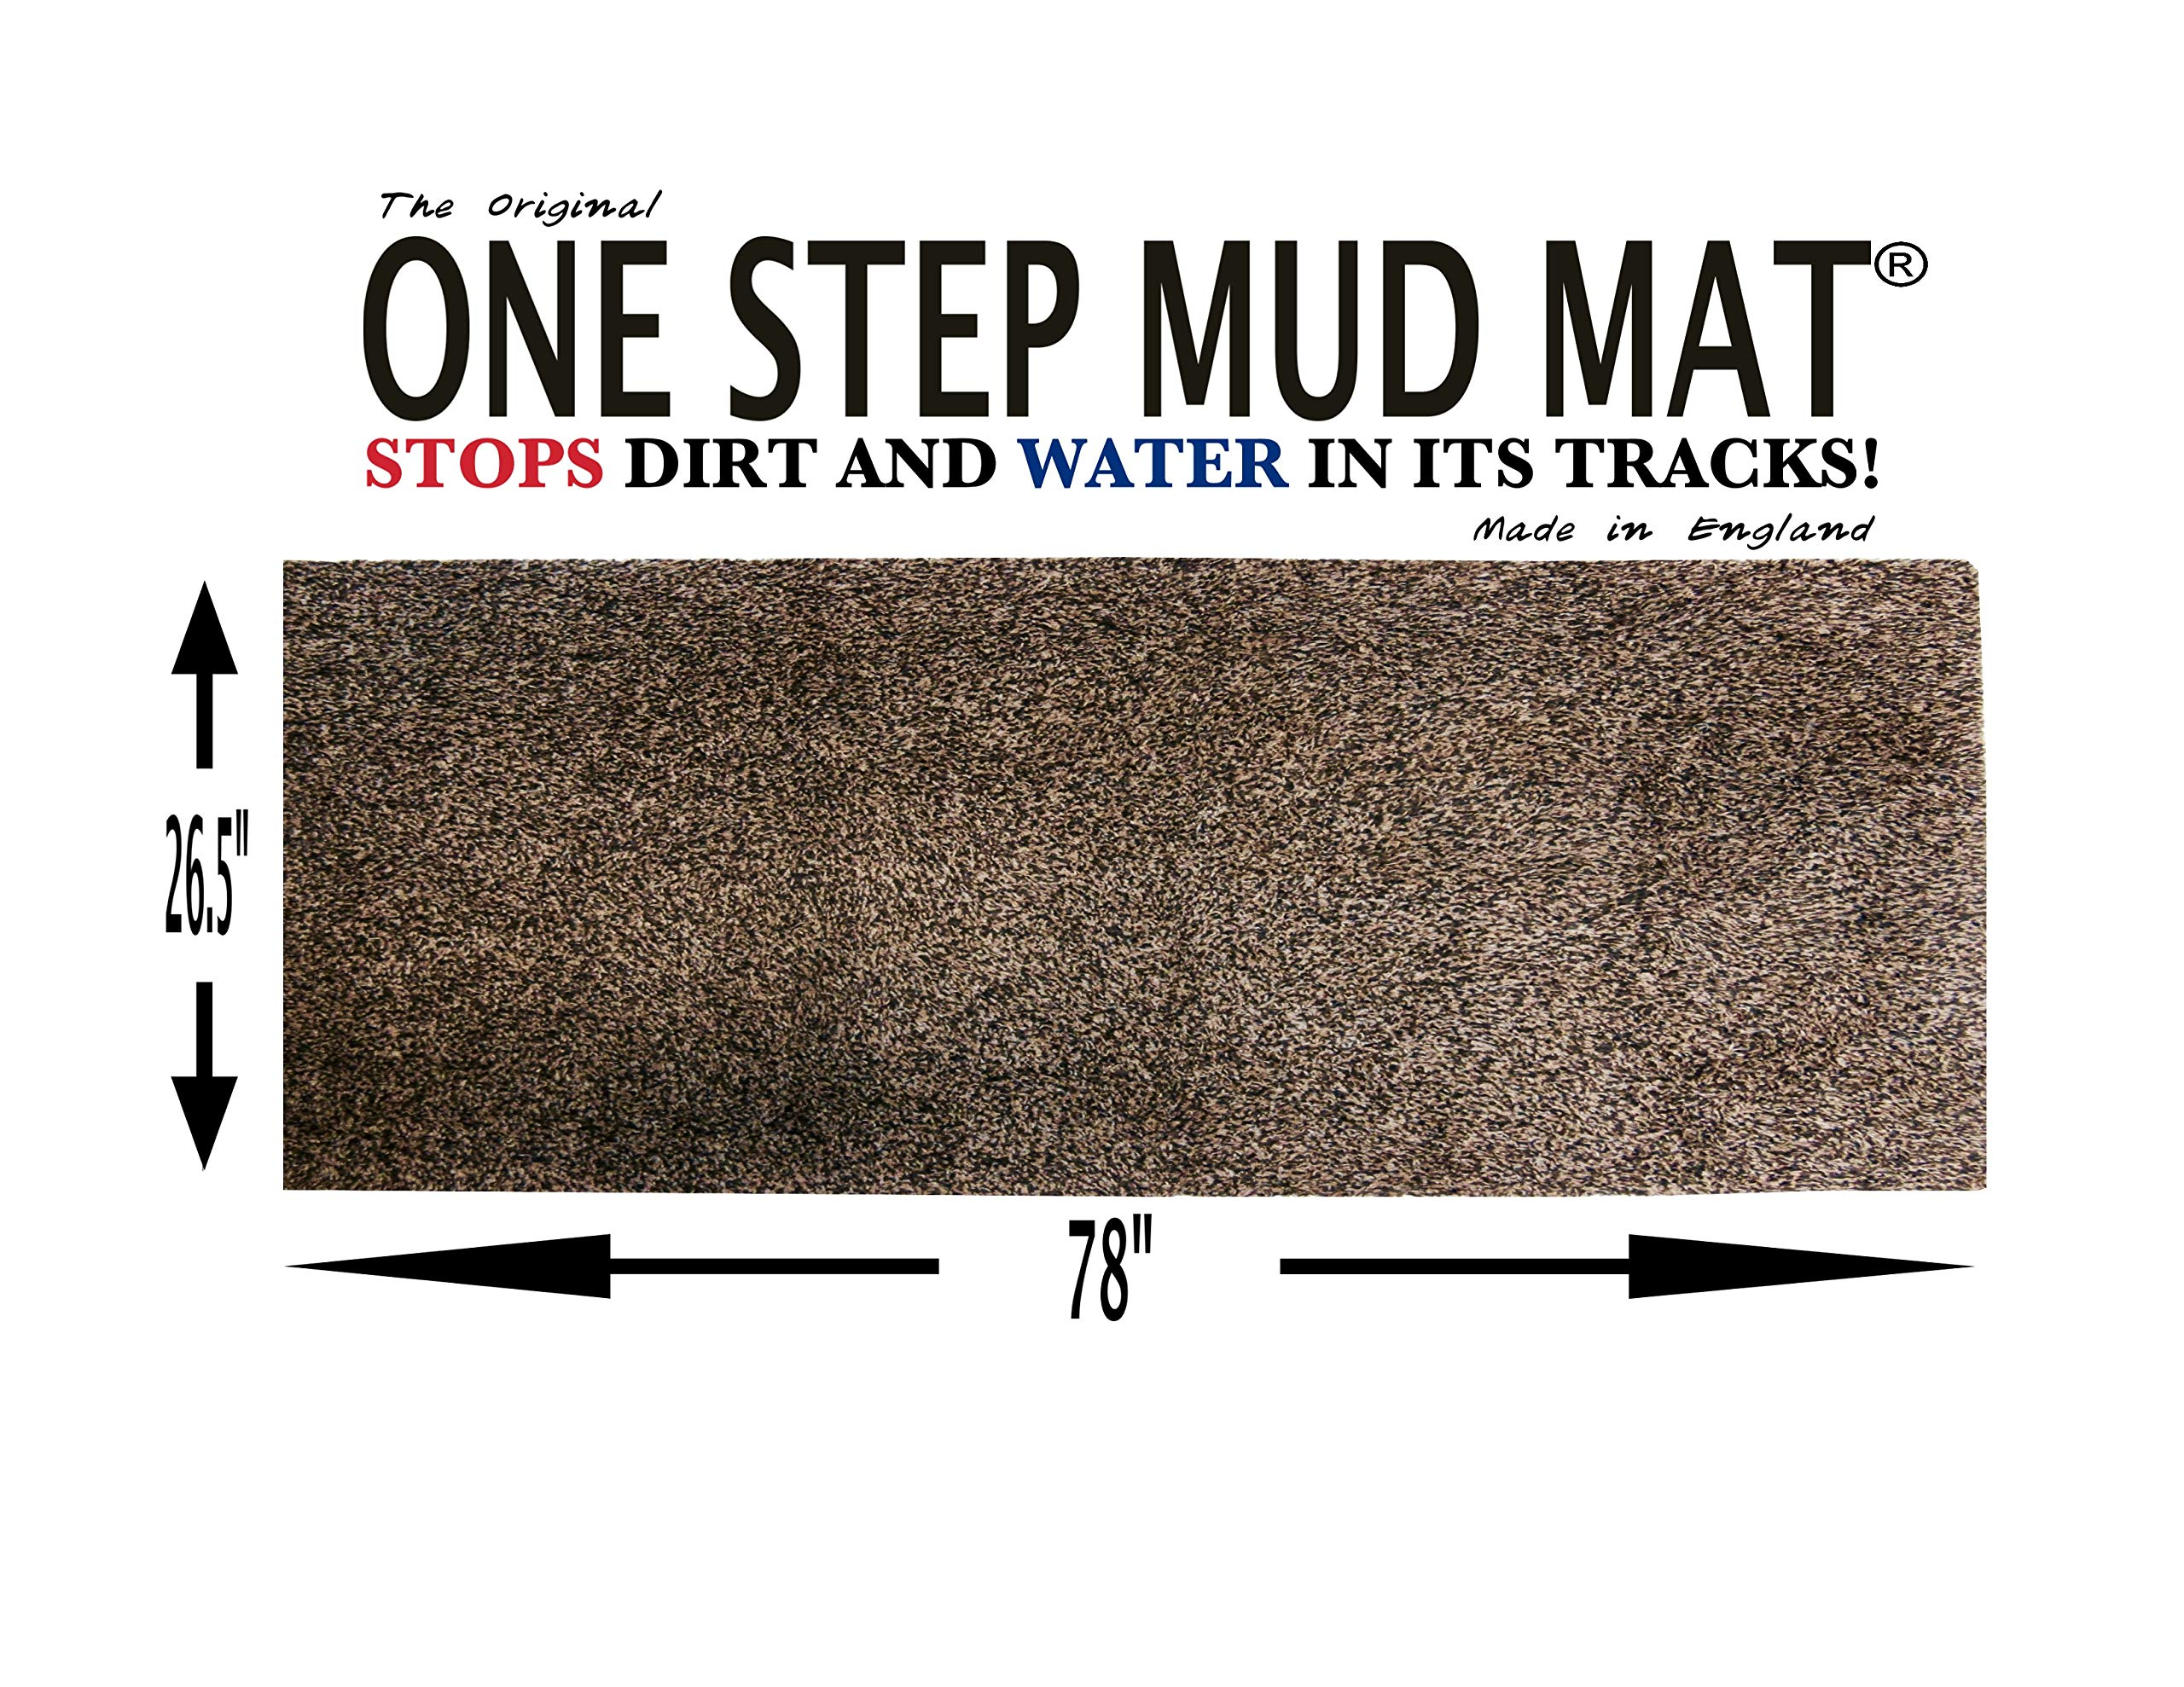 One Step Mud Mat Original Made in England 26.5W x 78L Runner (Brown) Indoor Floor Mat with Non Slip Backing Traps Mud and Dirt Perfect for Pets Excellent for High Traffic Areas by ONE STEP MUD MAT STOPS DIRT AND WATER IN ITS TRACKS! (Image #1)